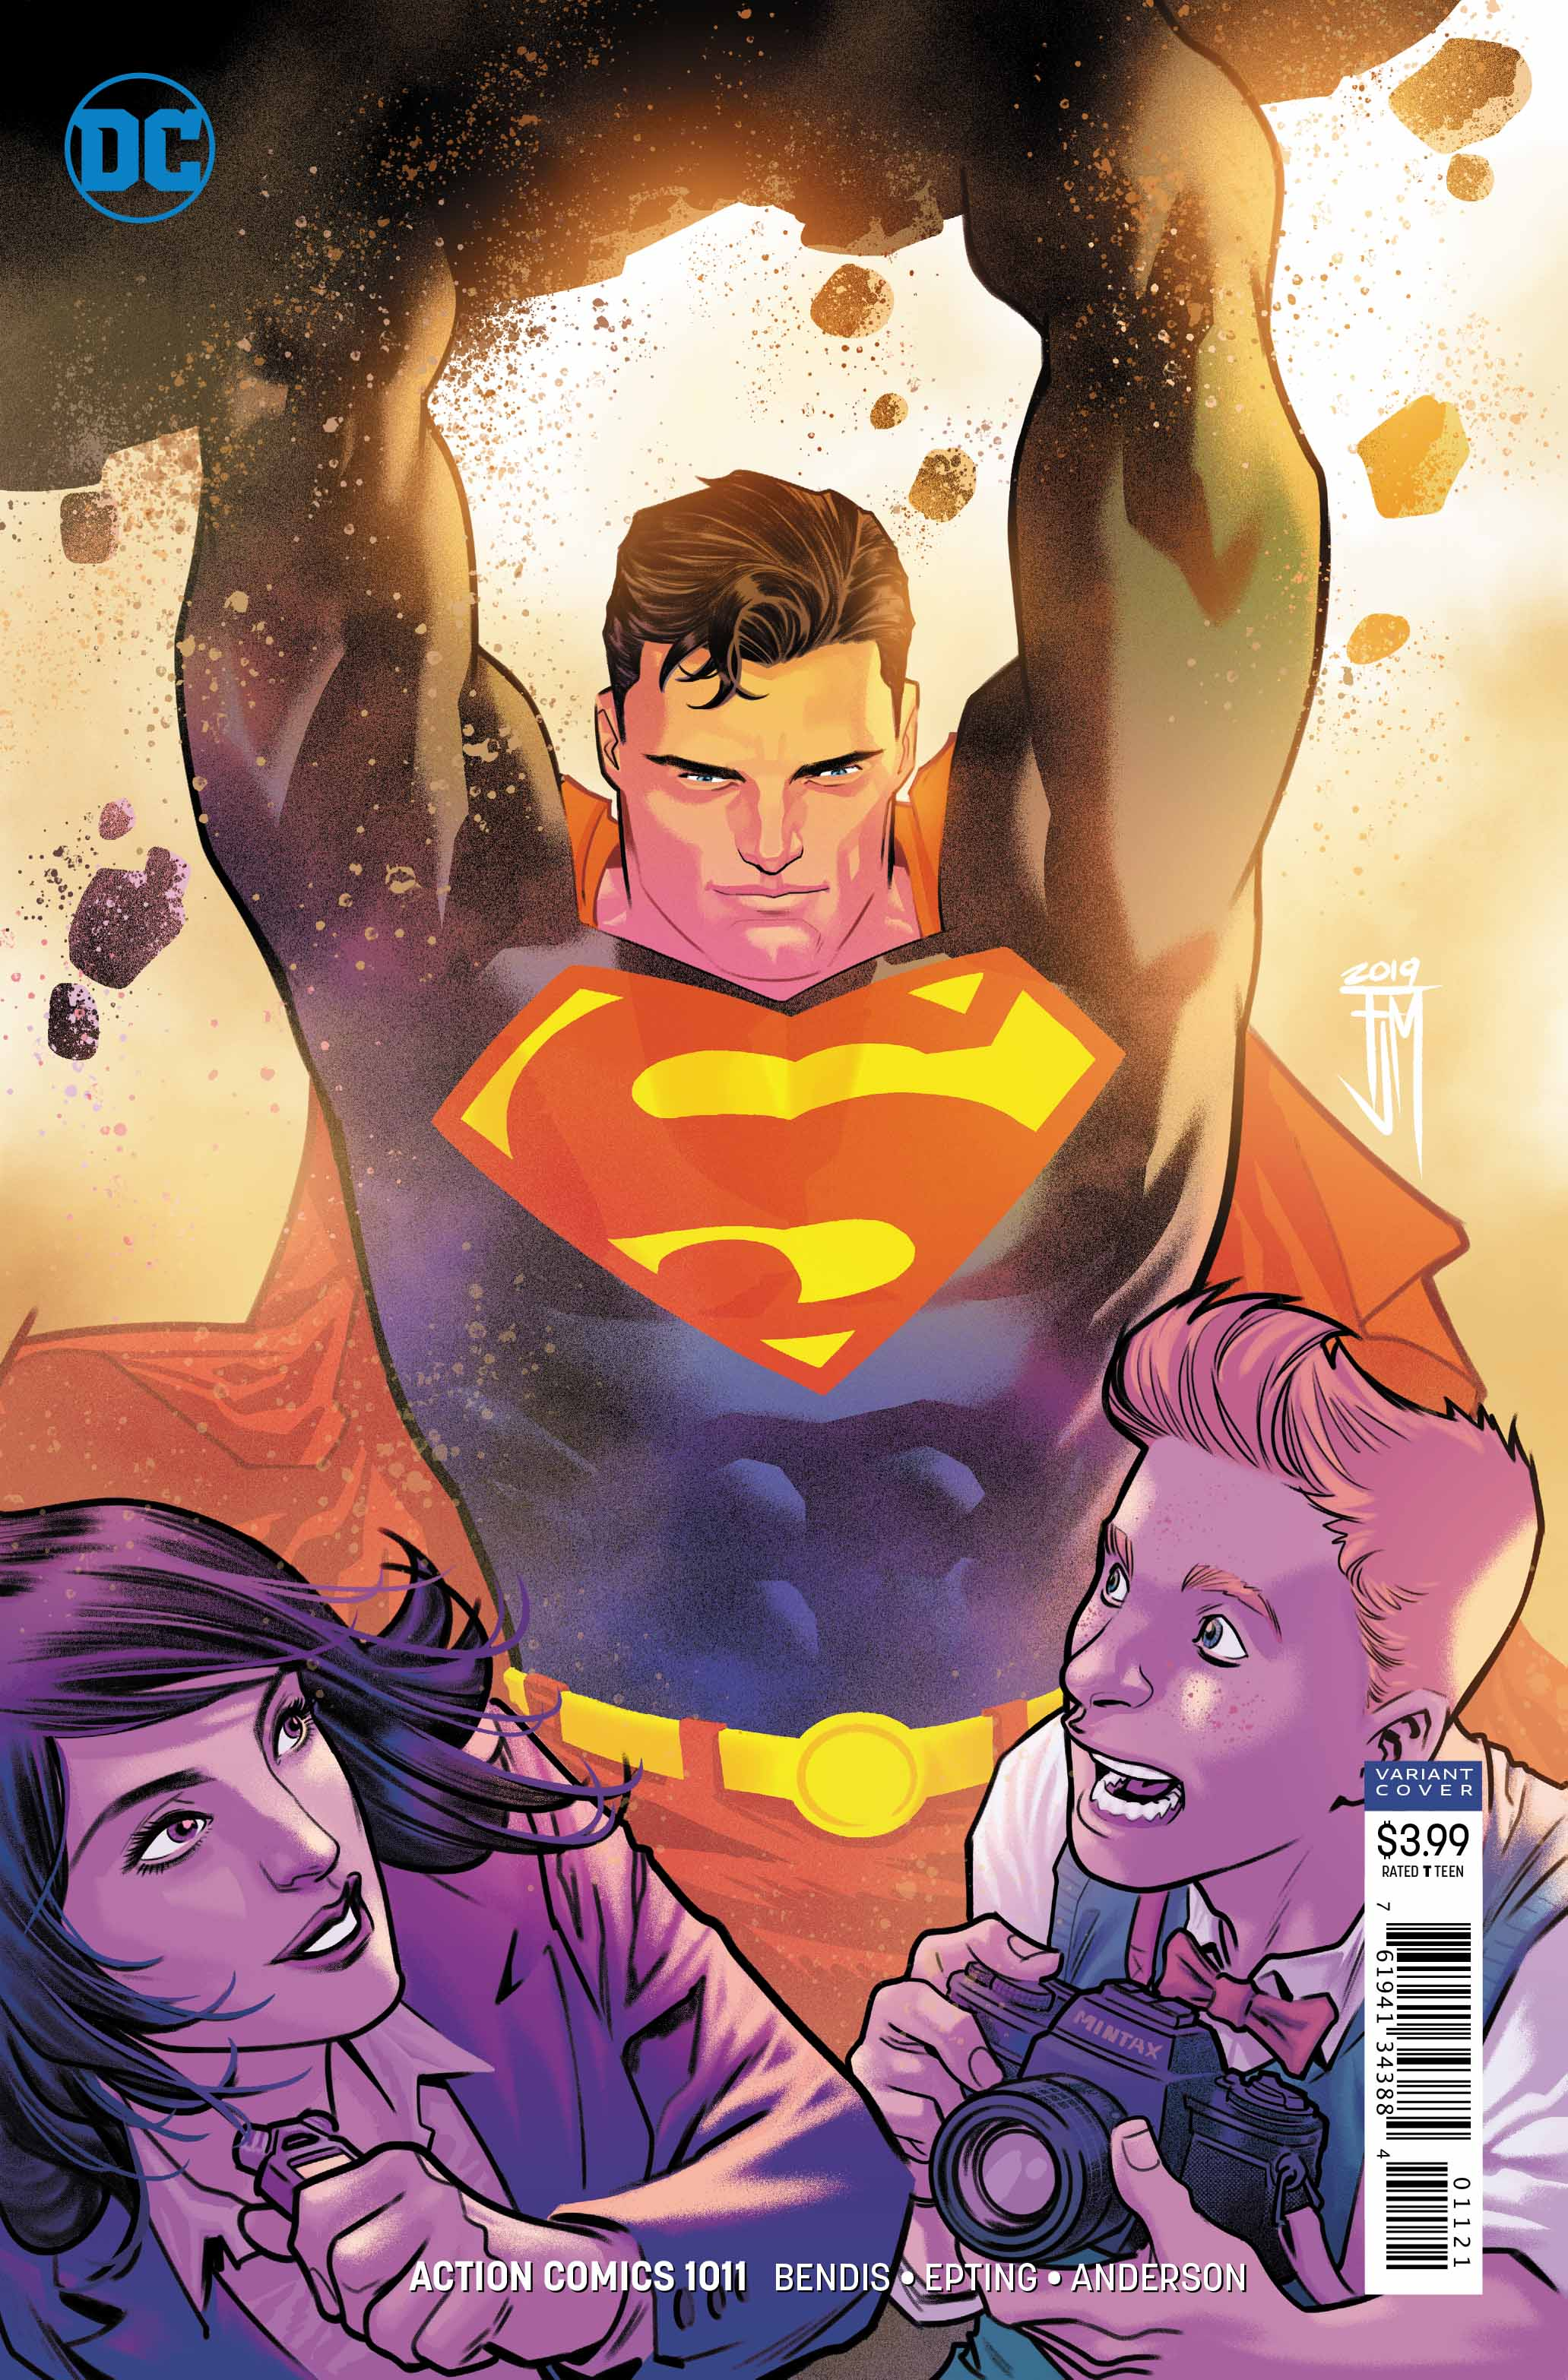 Action Comics #1011 review: Hunters and Guardians